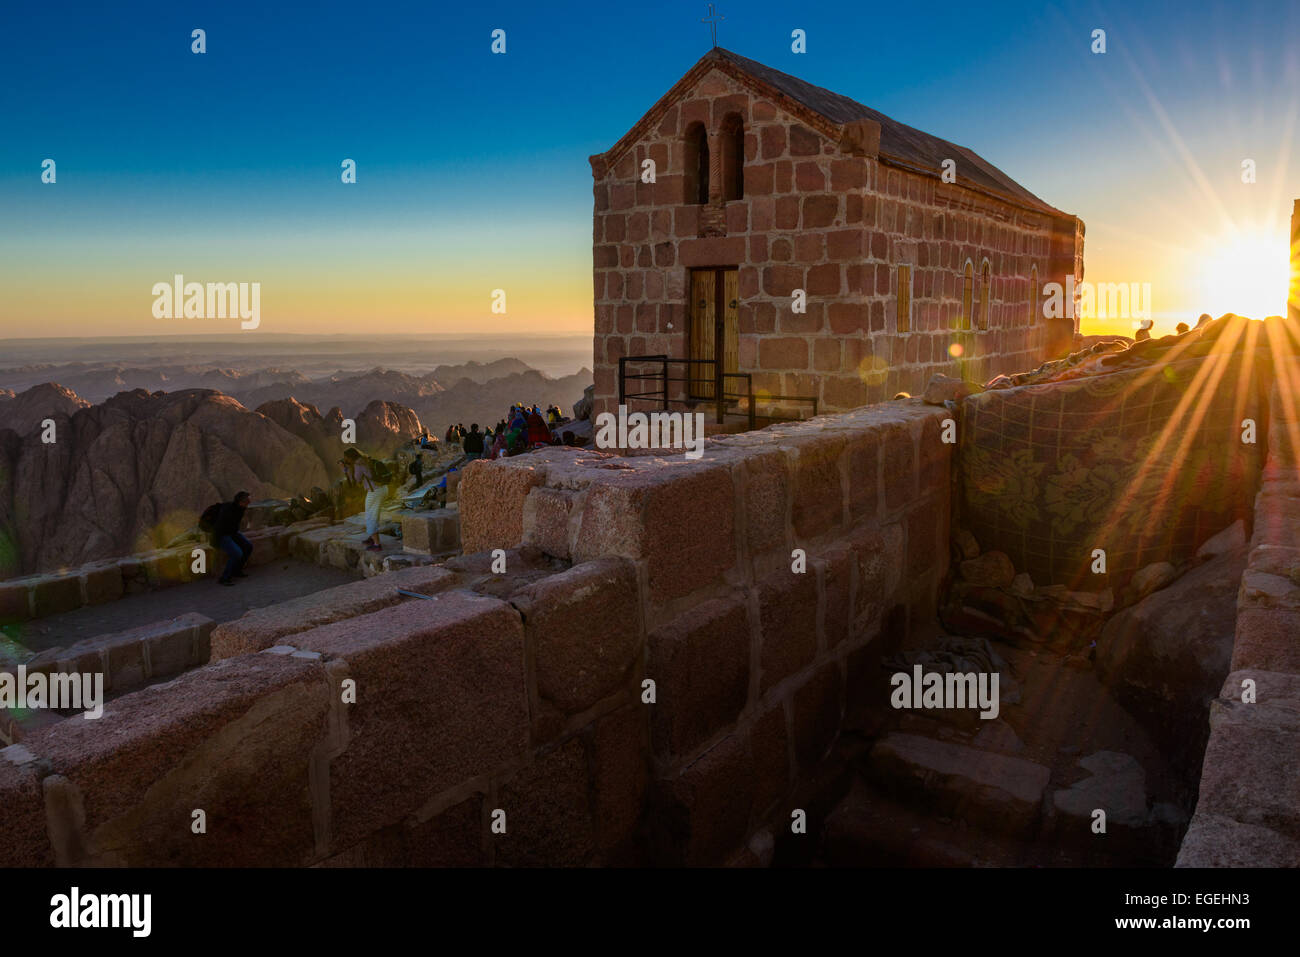 asian singles in mount sinai List of religious sites  (dharmic) and east asian religions (taoic)  the biblical mount sinai was the place where moses received the ten commandments.